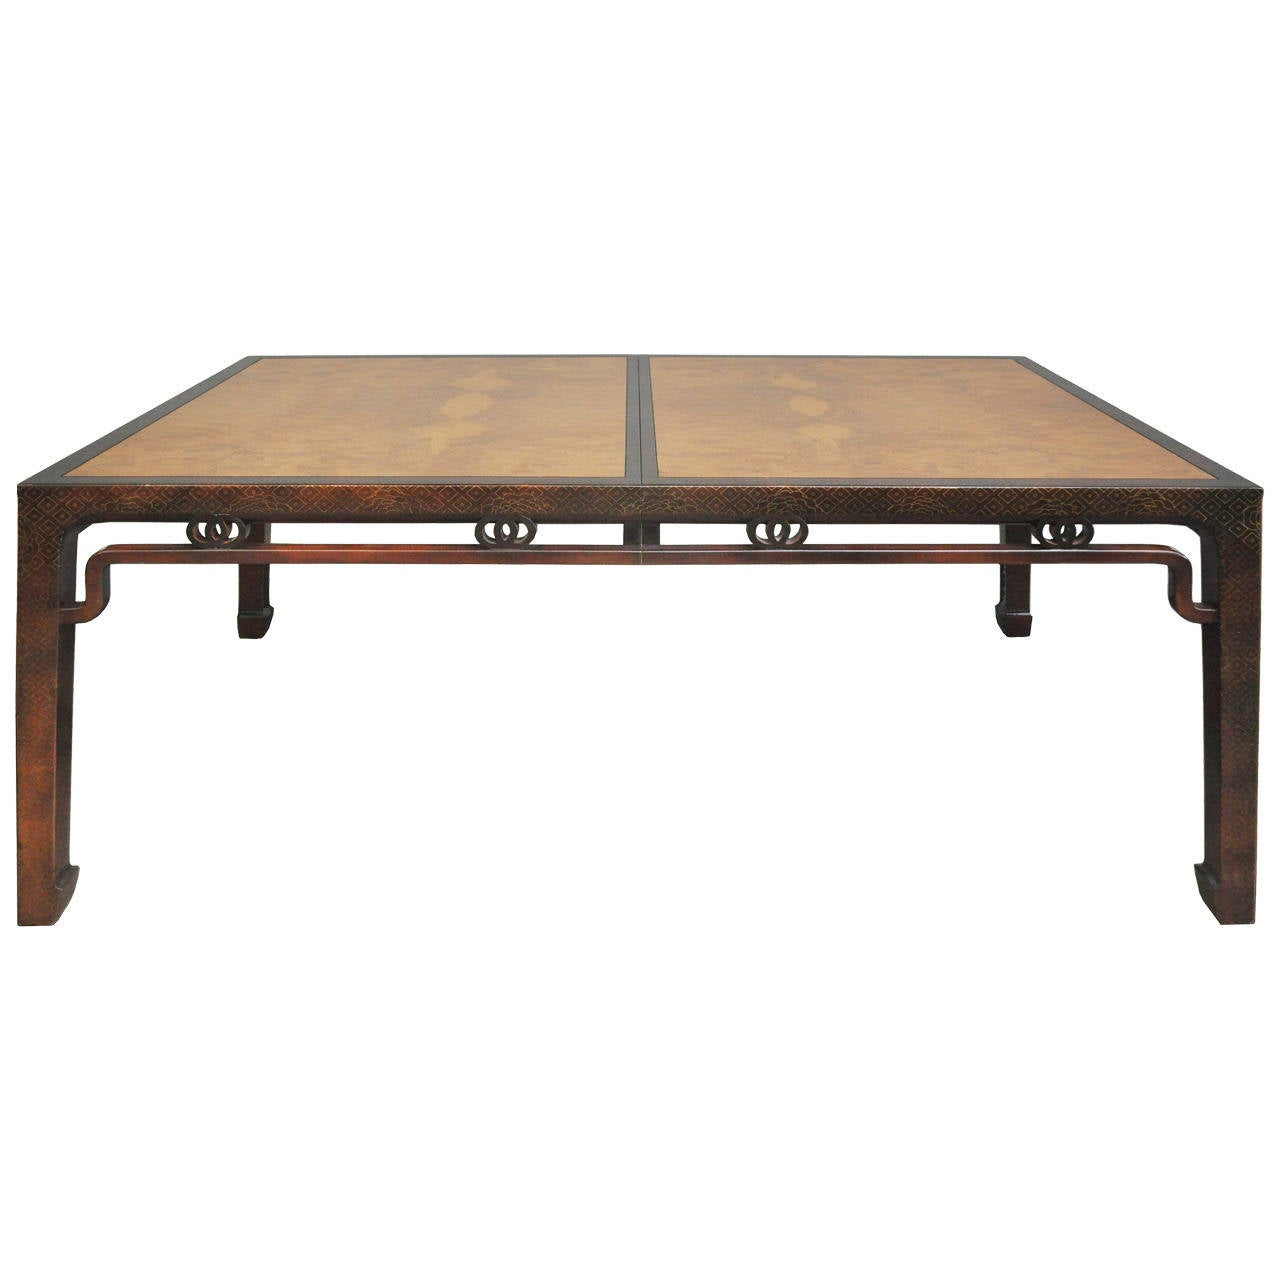 baker furniture chinoiserie style dining table for sale at 1stdibs